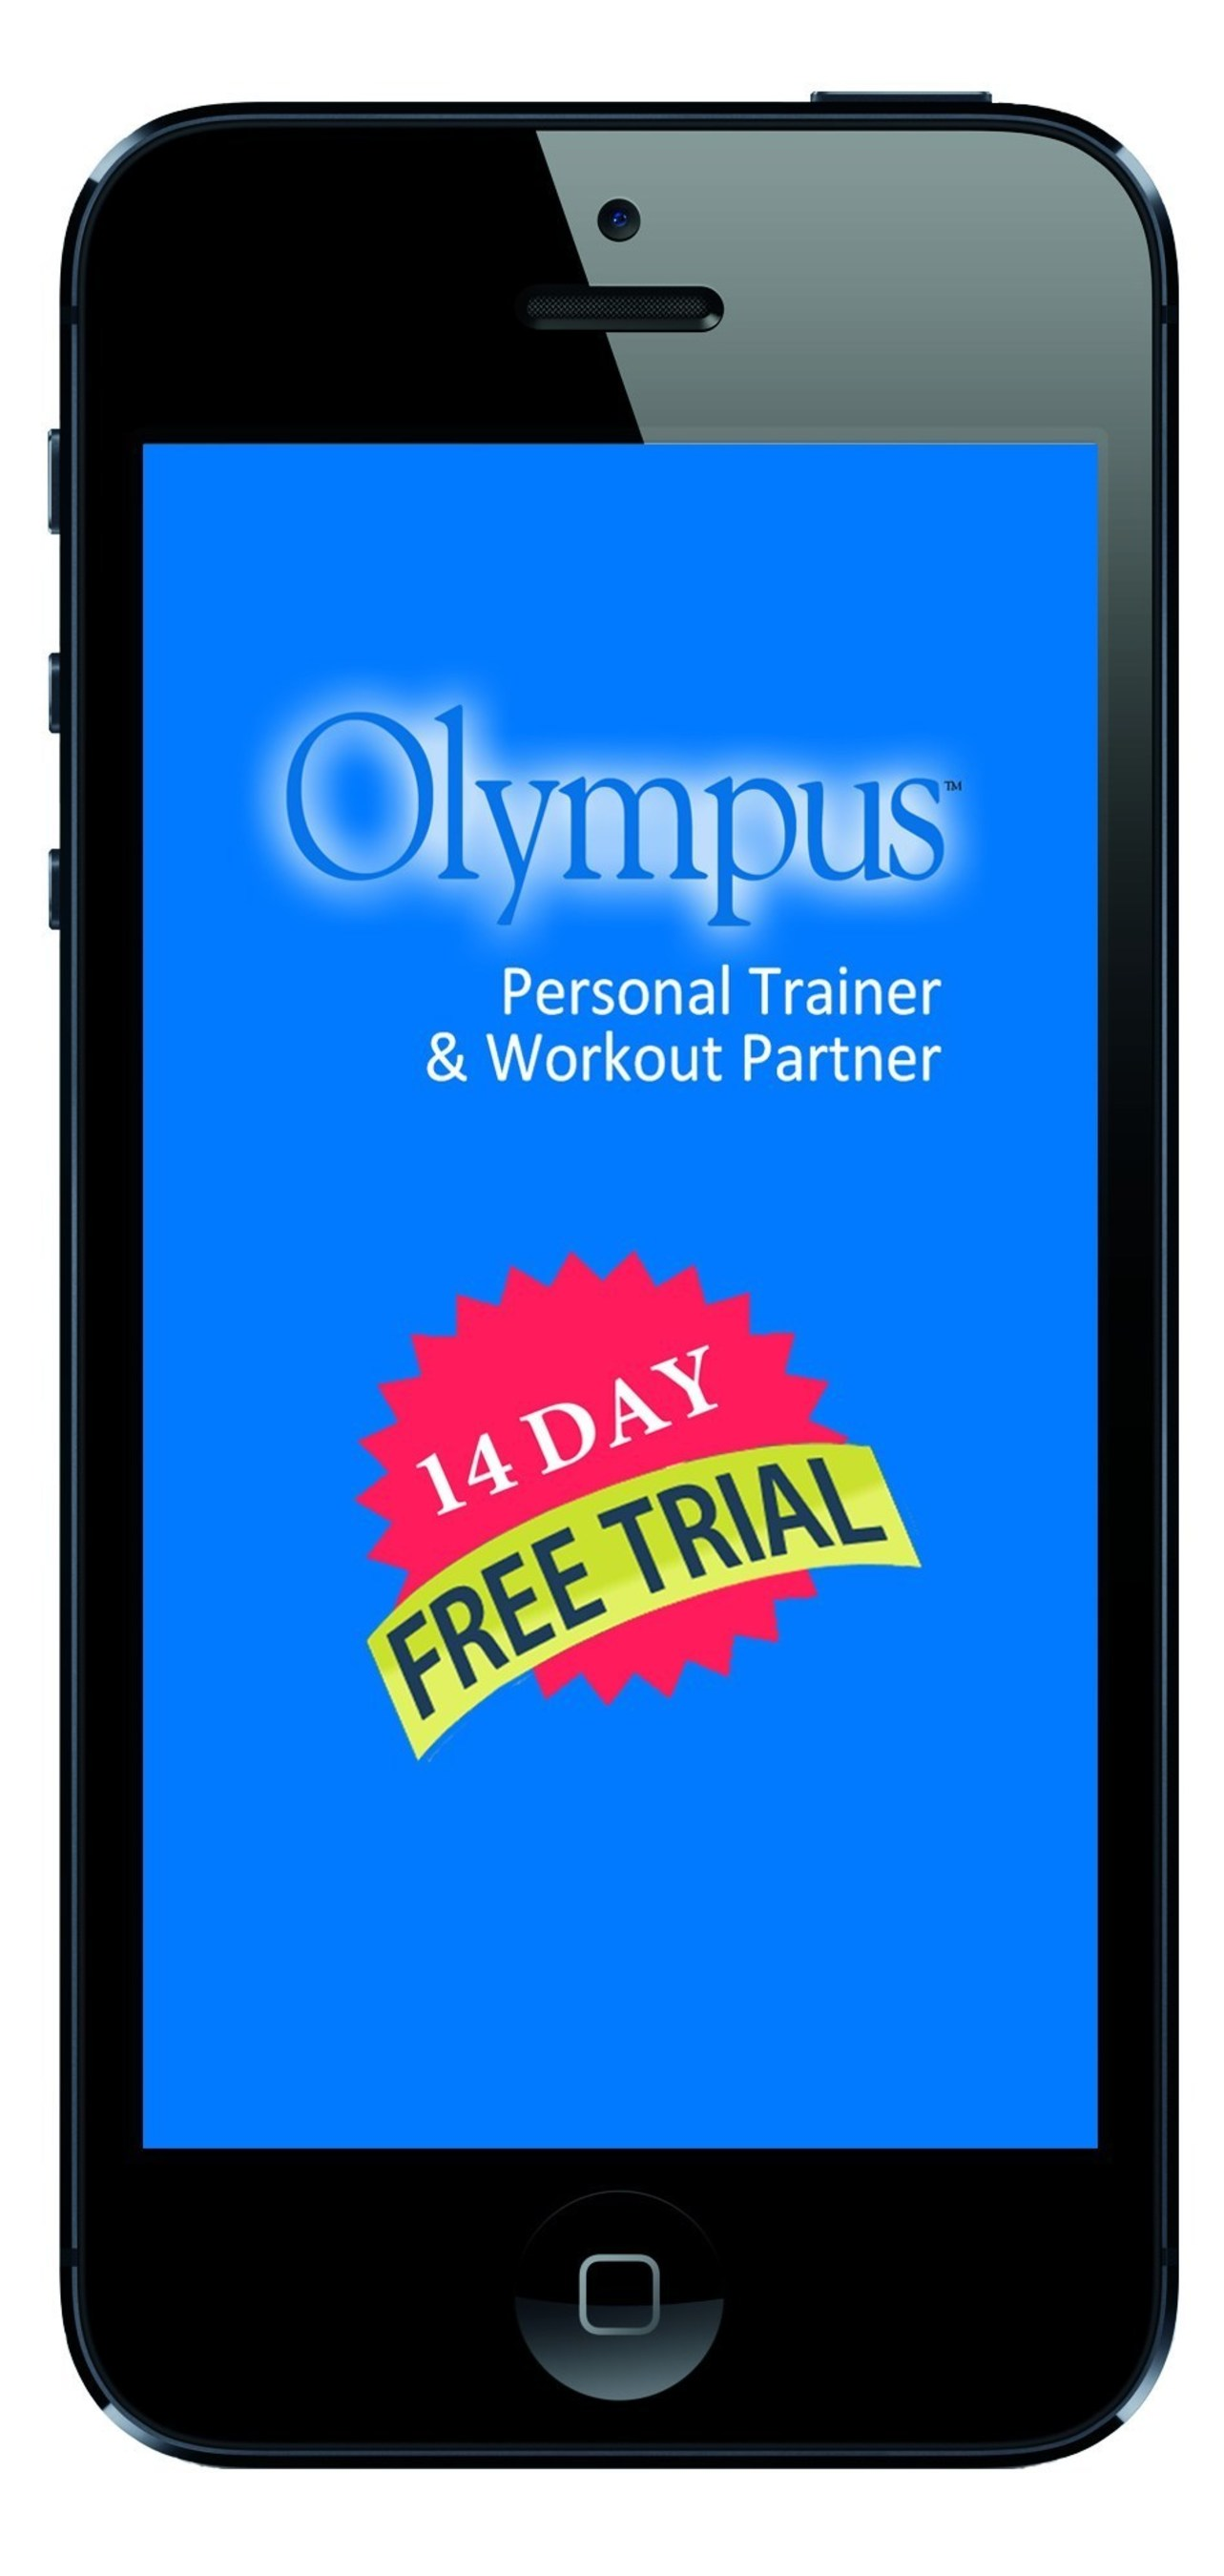 Olympus' Surges Into The Top 100 iTunes Health & Fitness Apps!